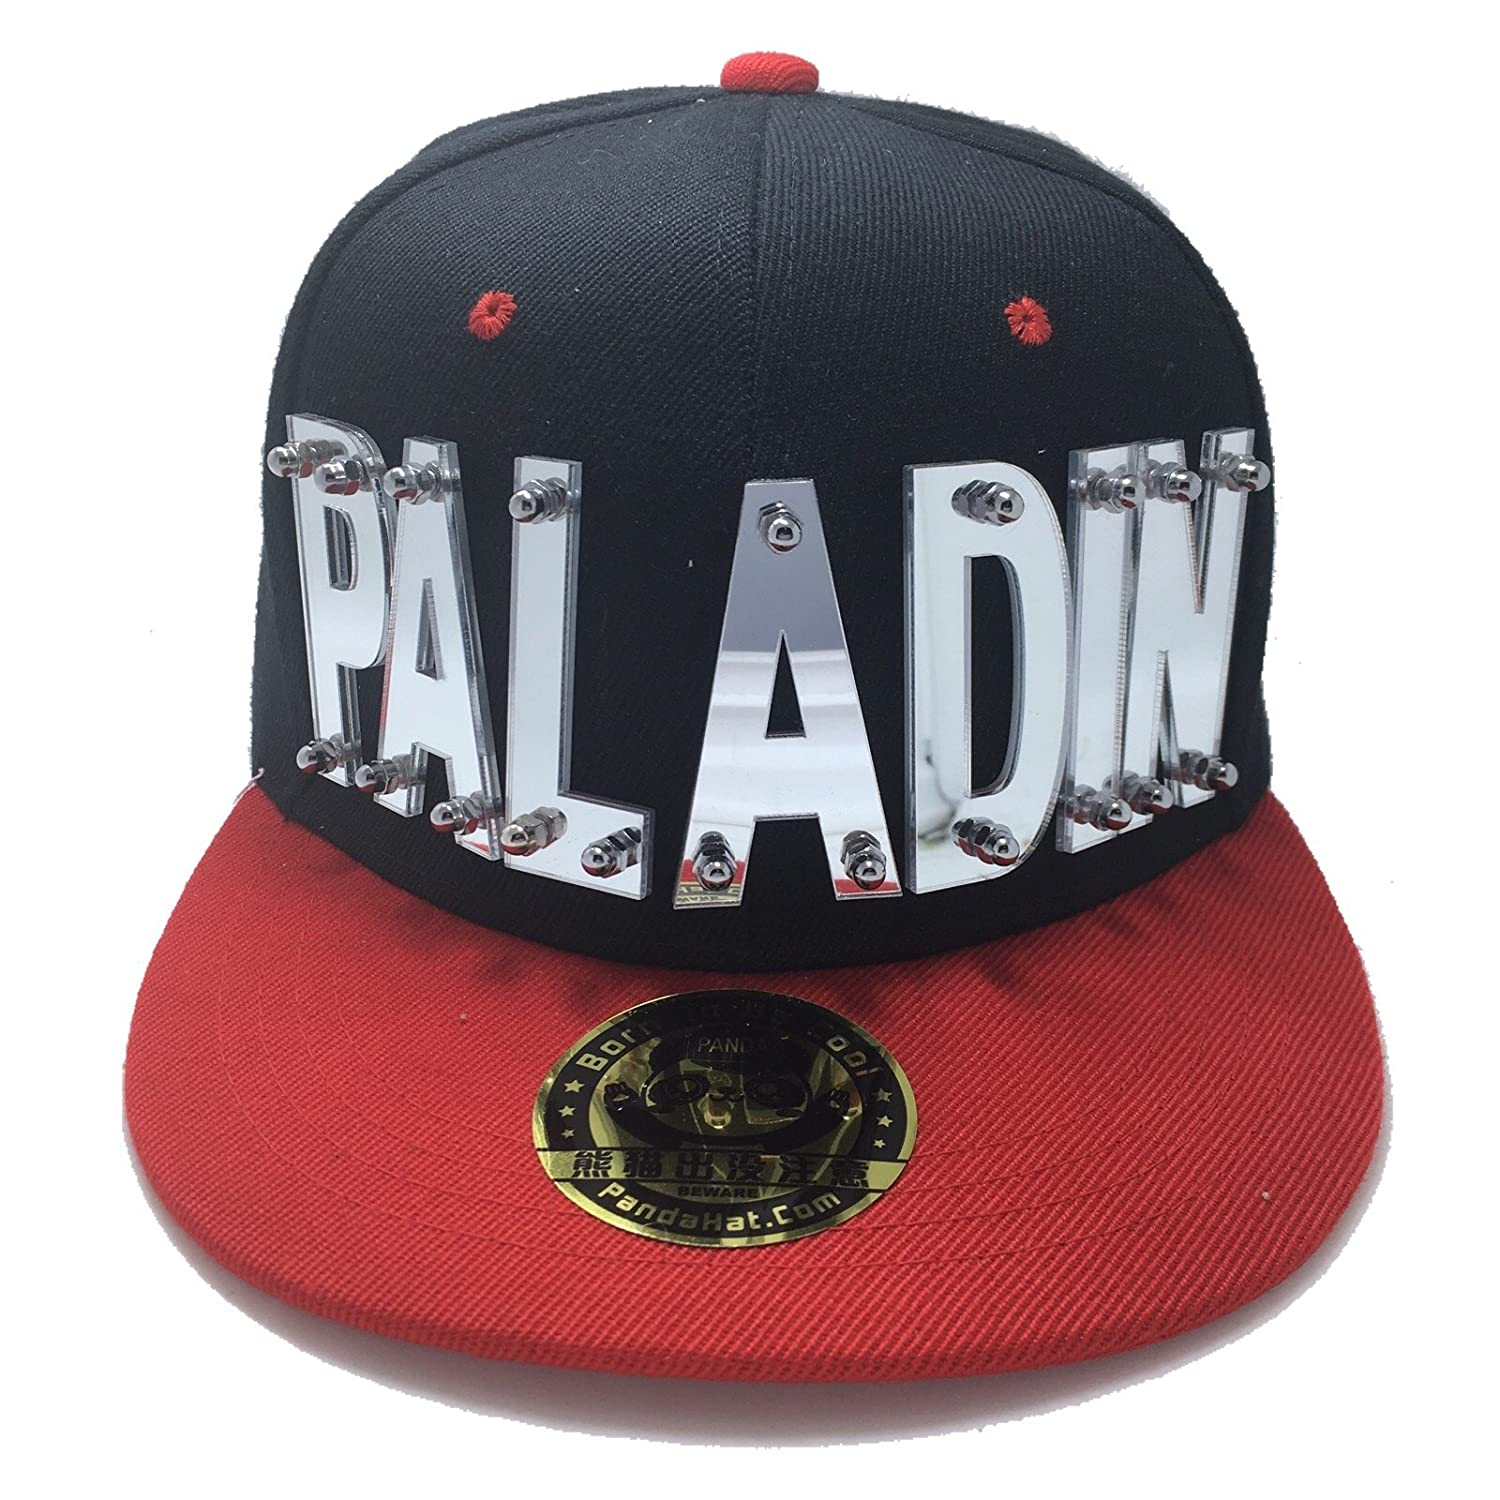 8571f935f PALADIN VOLTRON HAT IN BLACK WITH RED BRIM